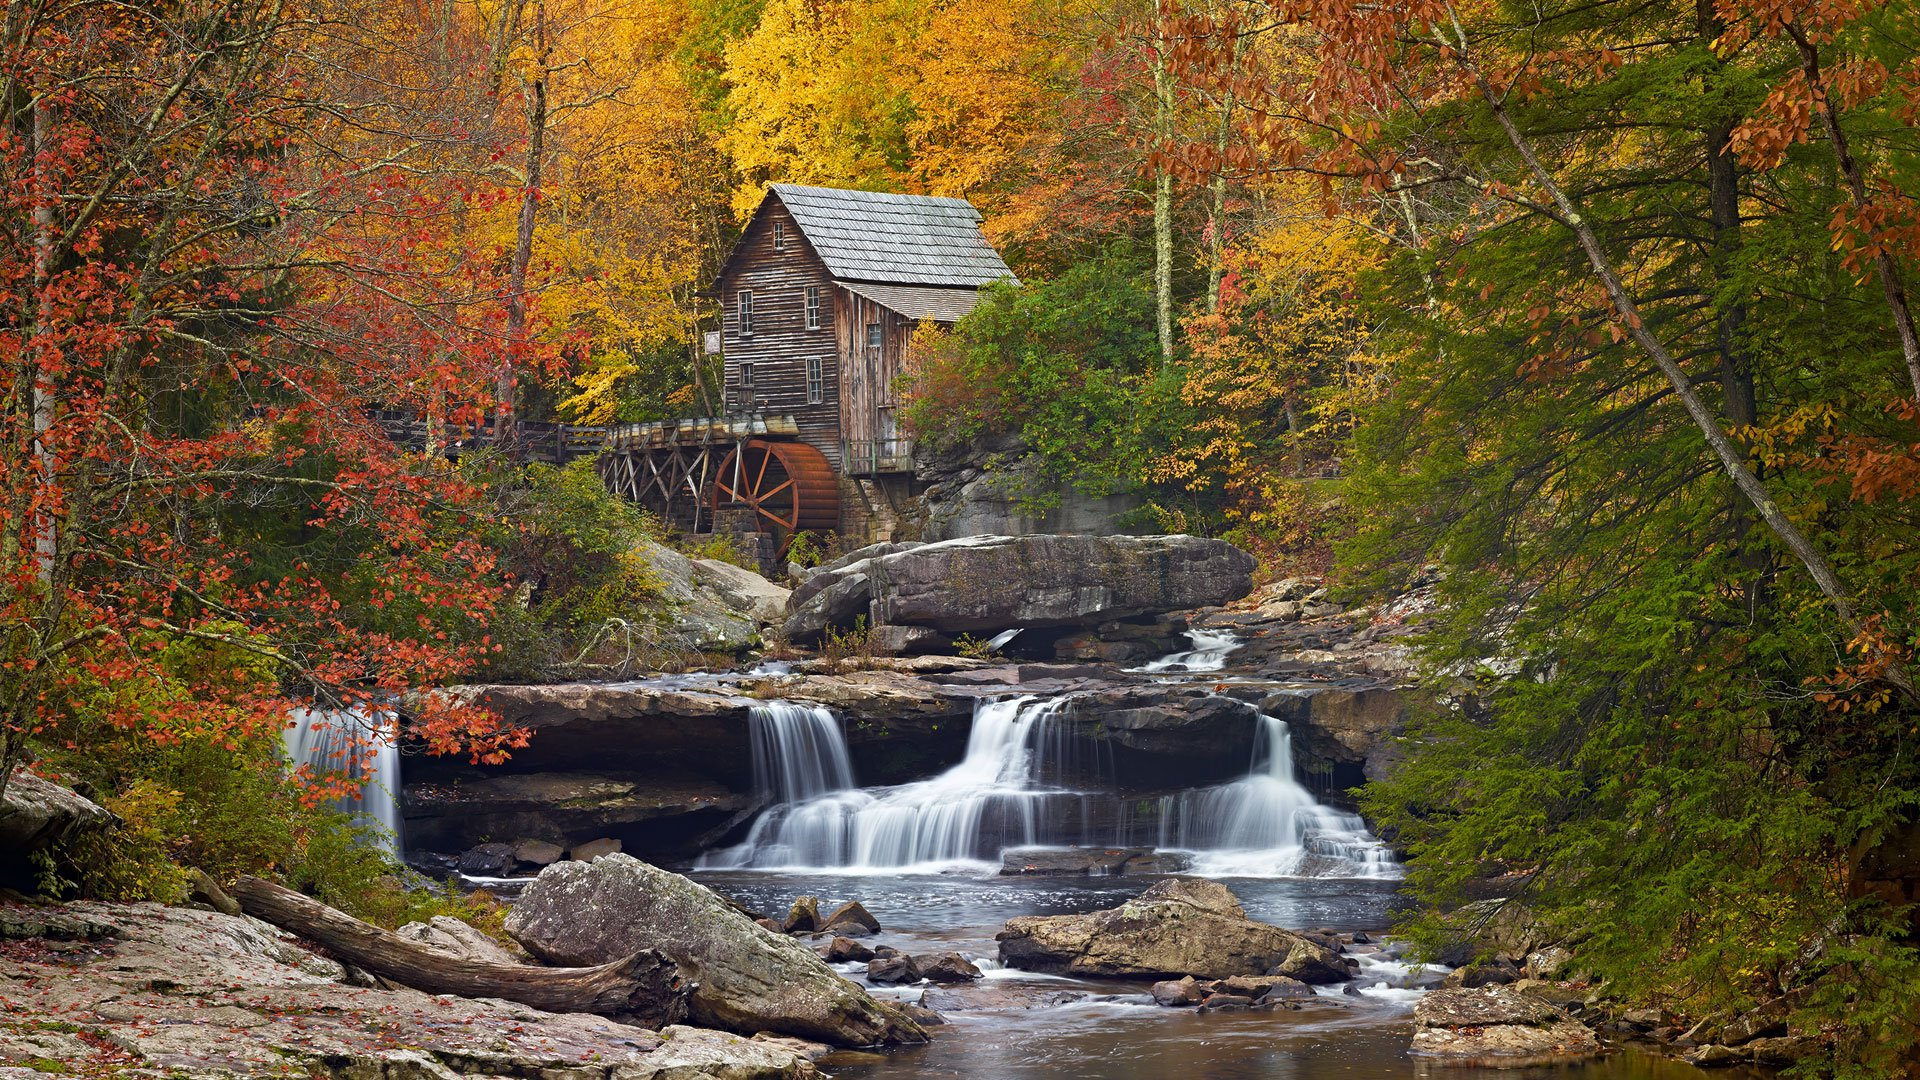 west virginia scenery wallpapers - wallpapersafari